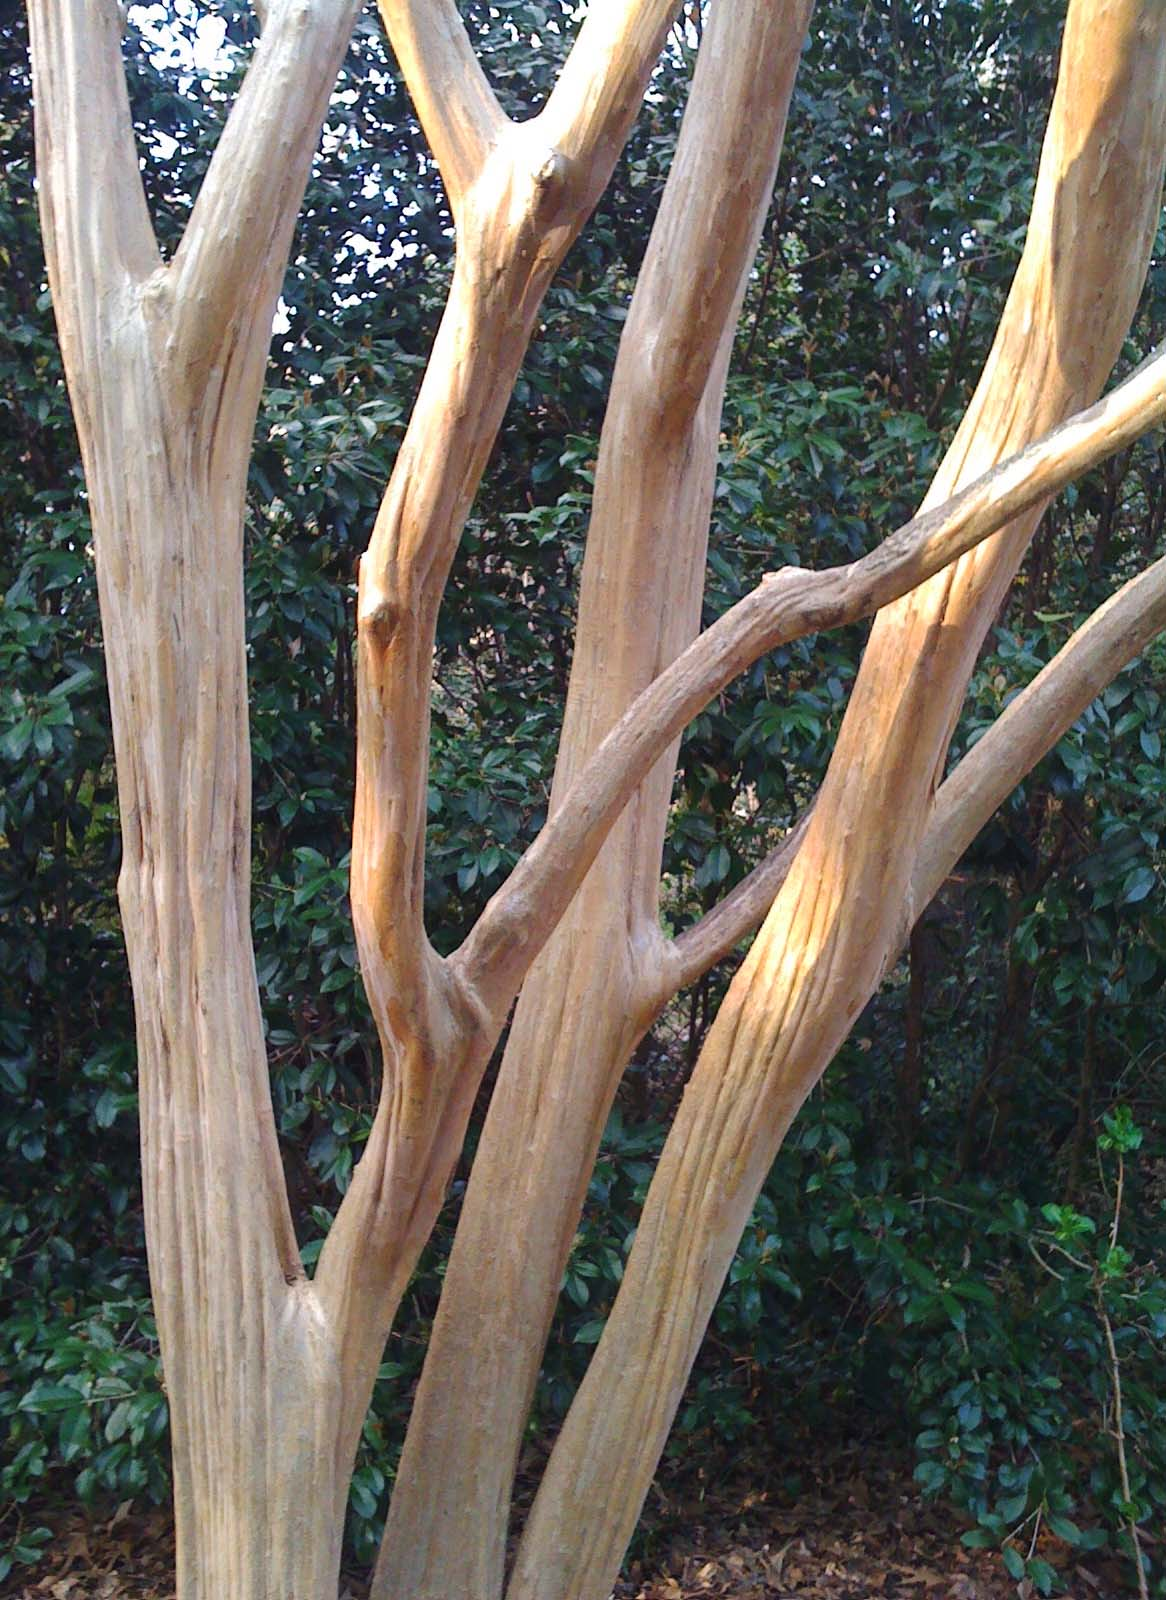 close up of the trunk and bark of a crepe myrtle tree